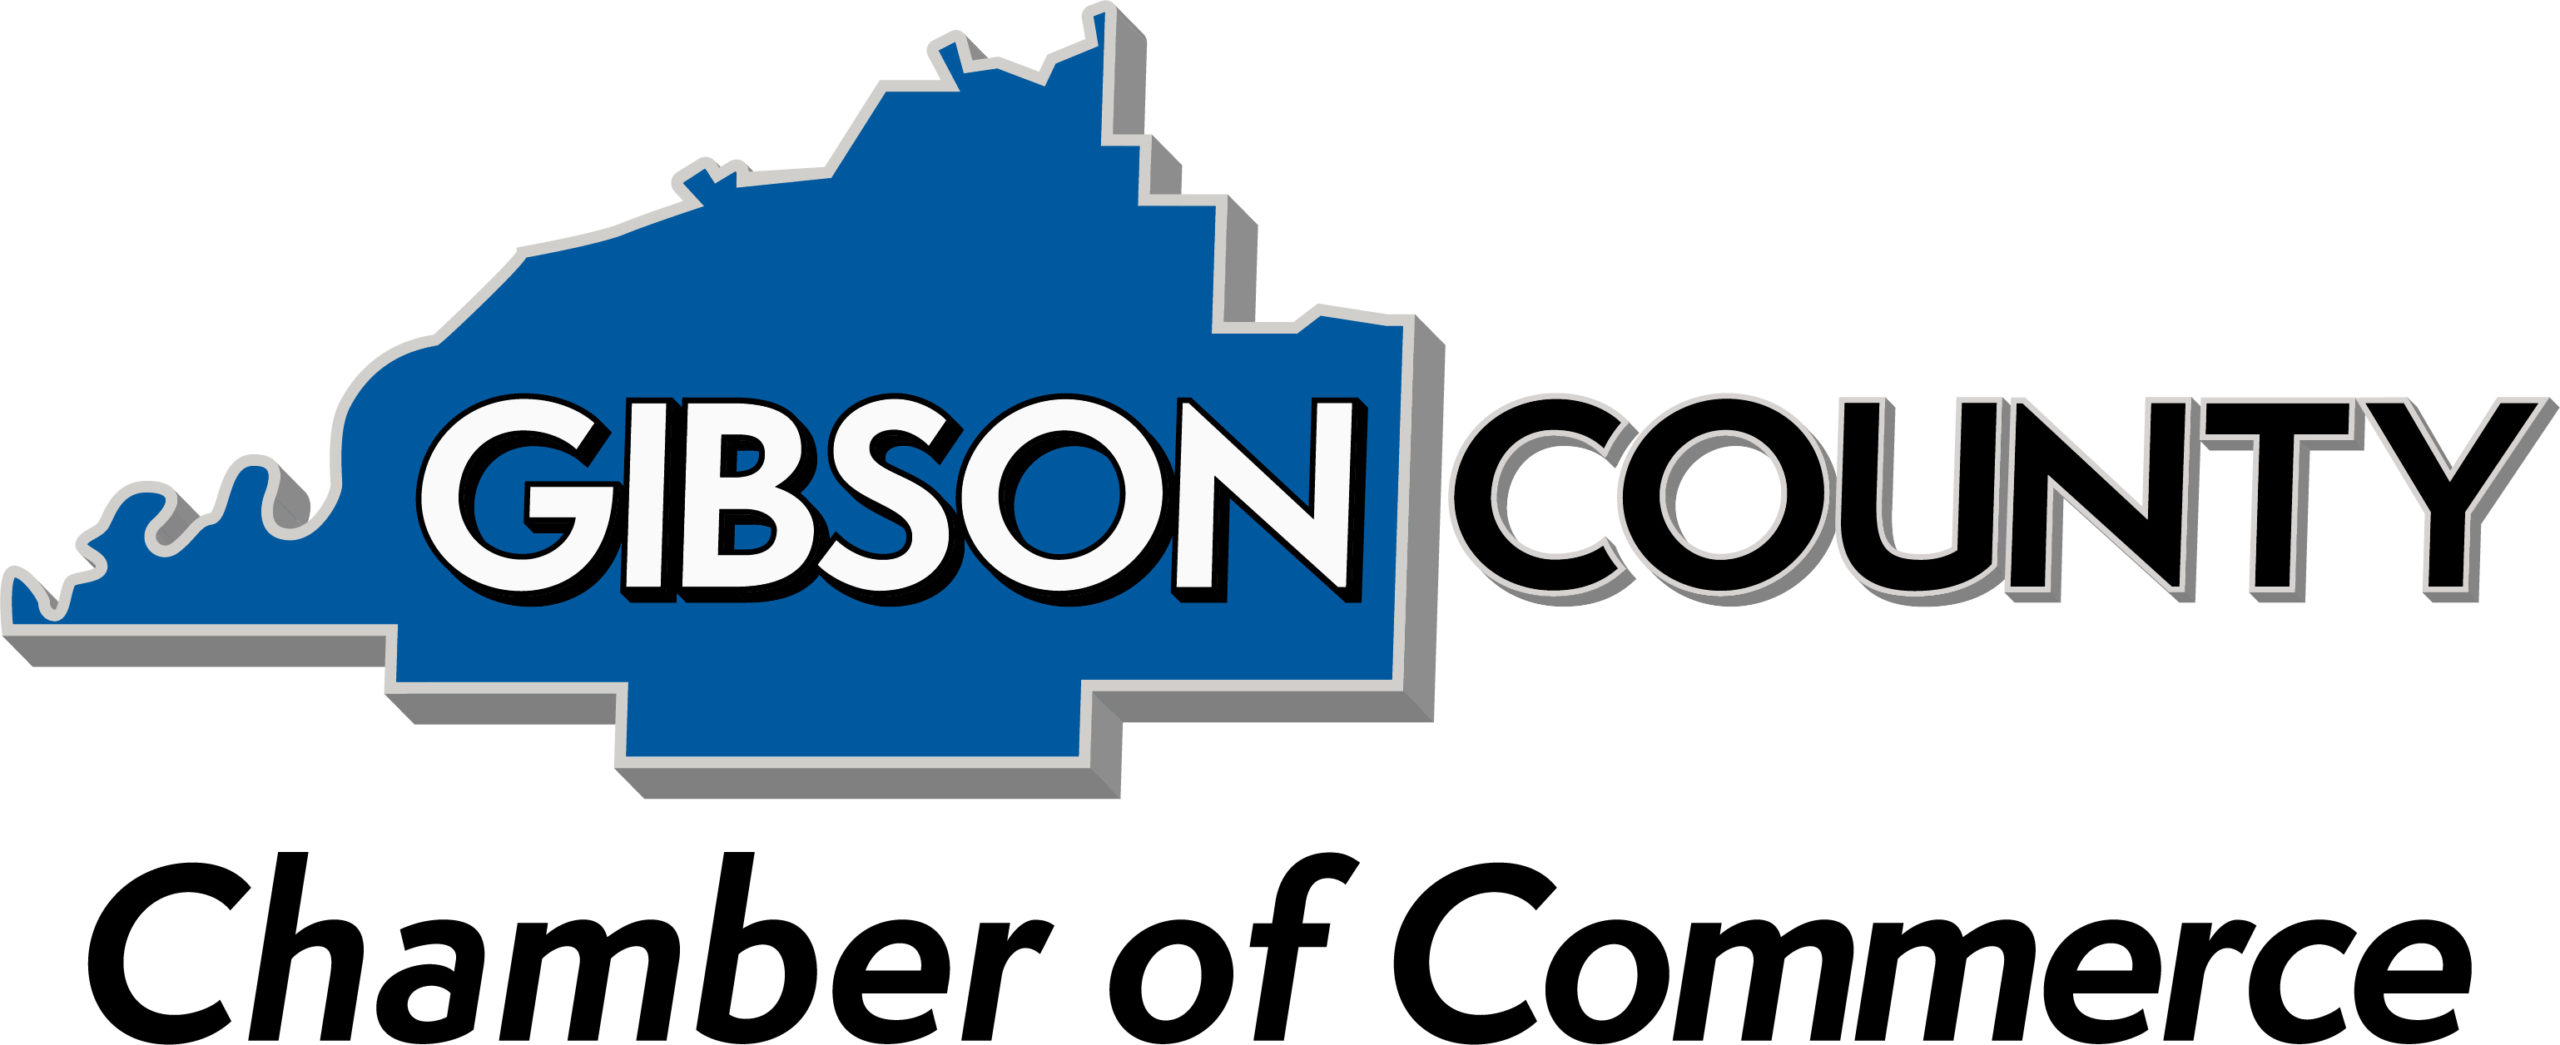 Gibson County Chamber of Commerce